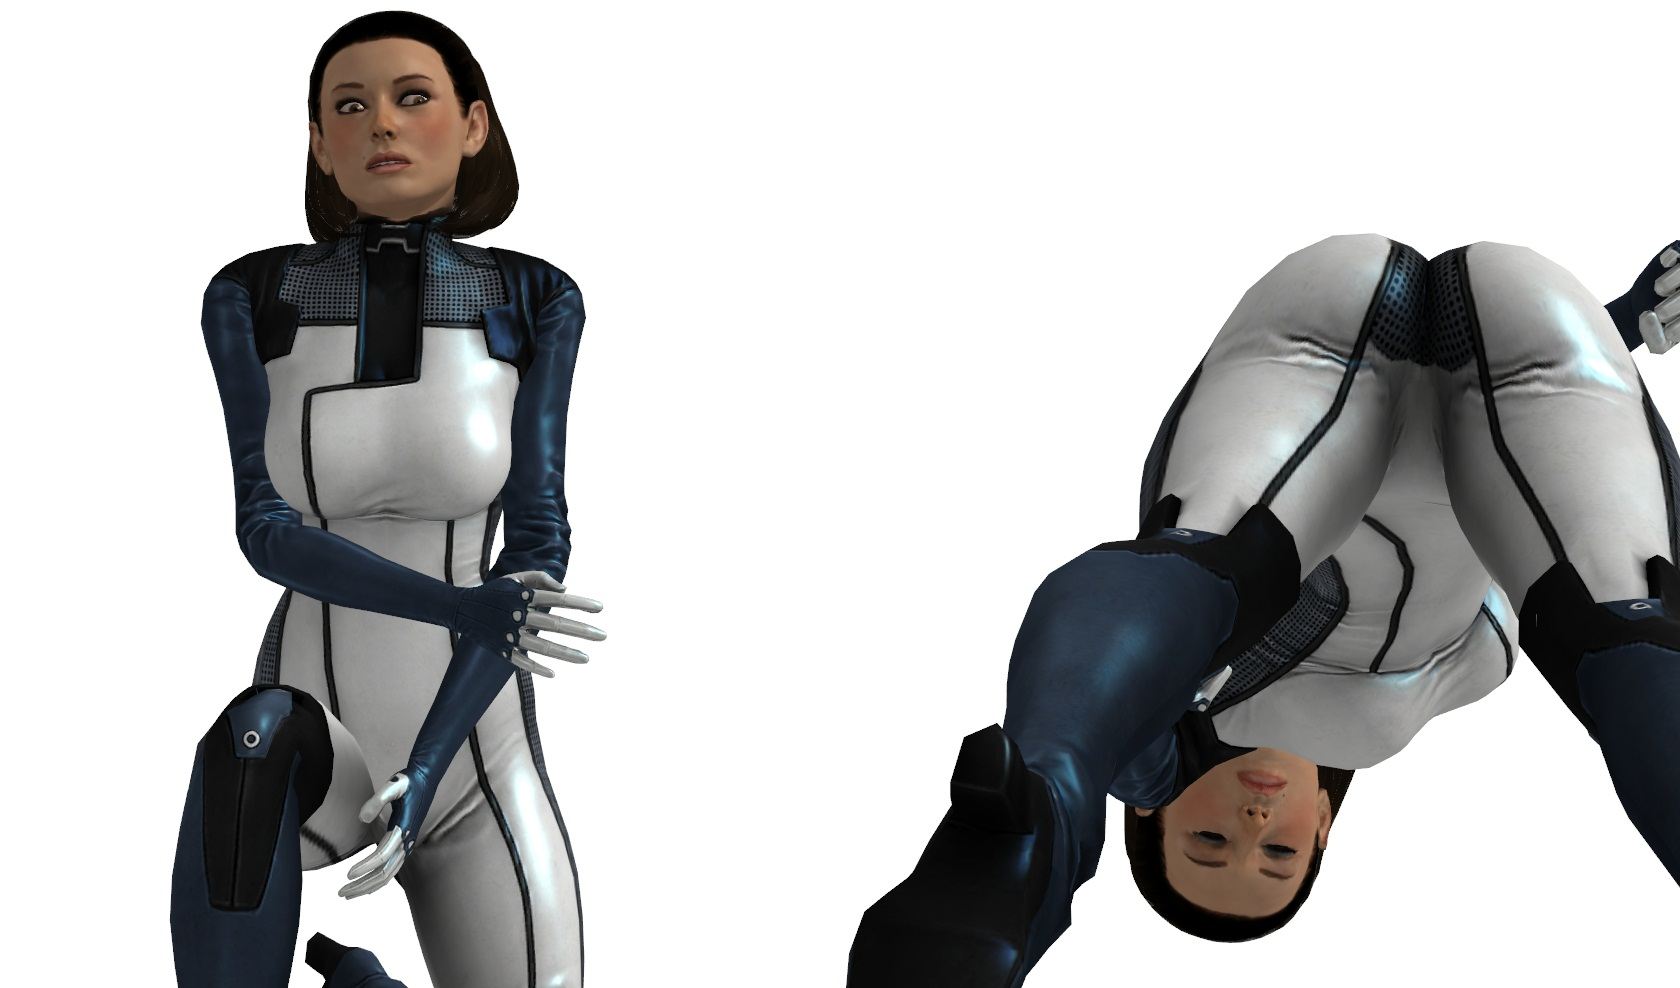 Mass effect1 nude mod softcore extreme chicks